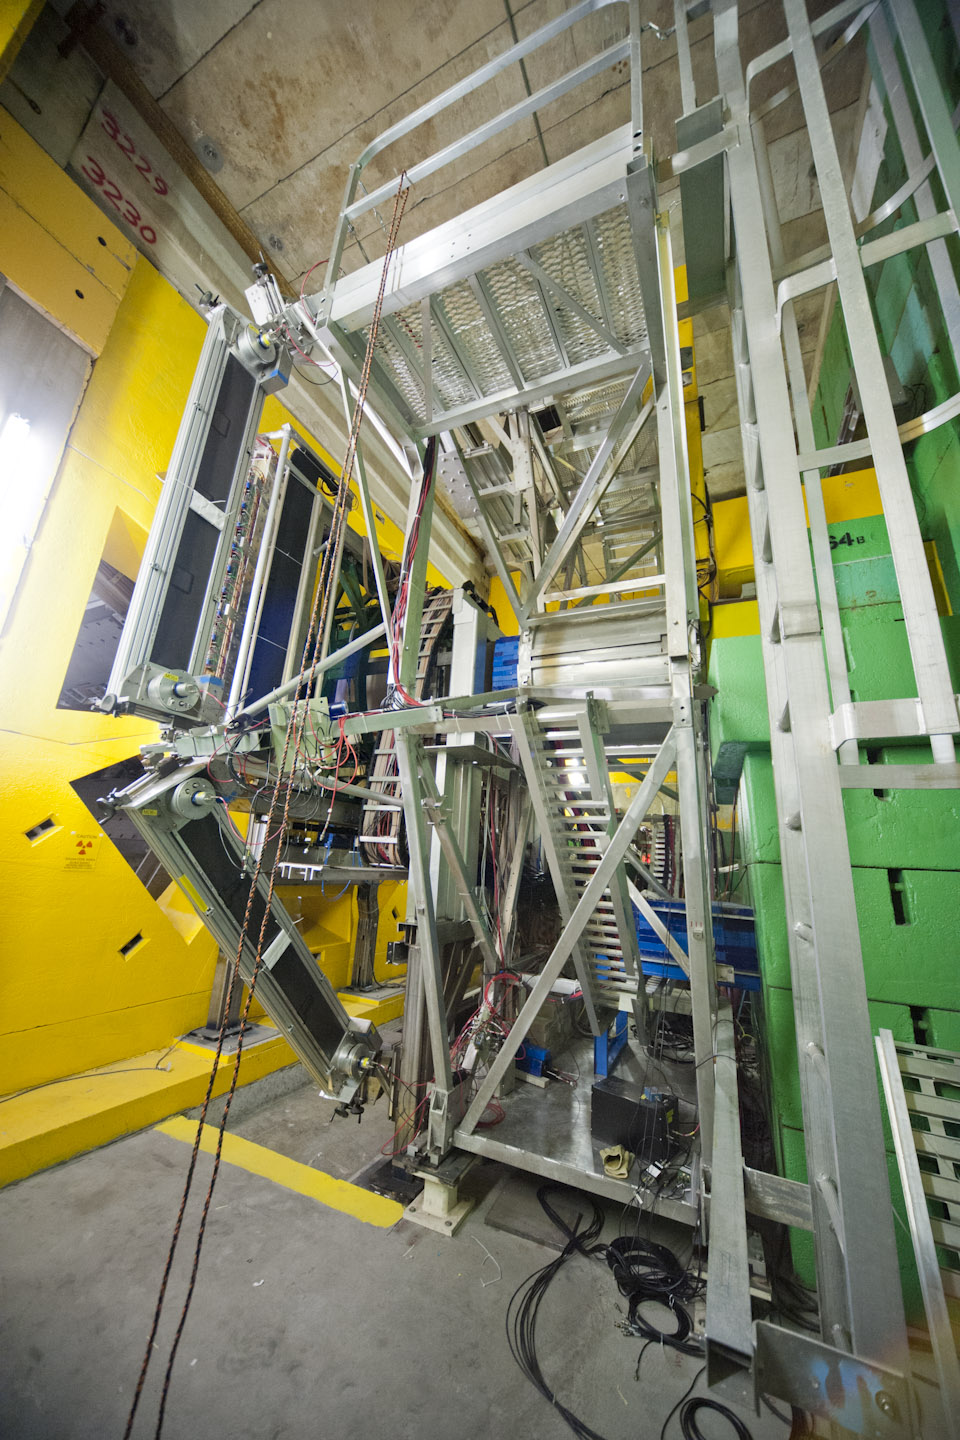 yellow and green radiation shield blocks flank Q-weak detectors